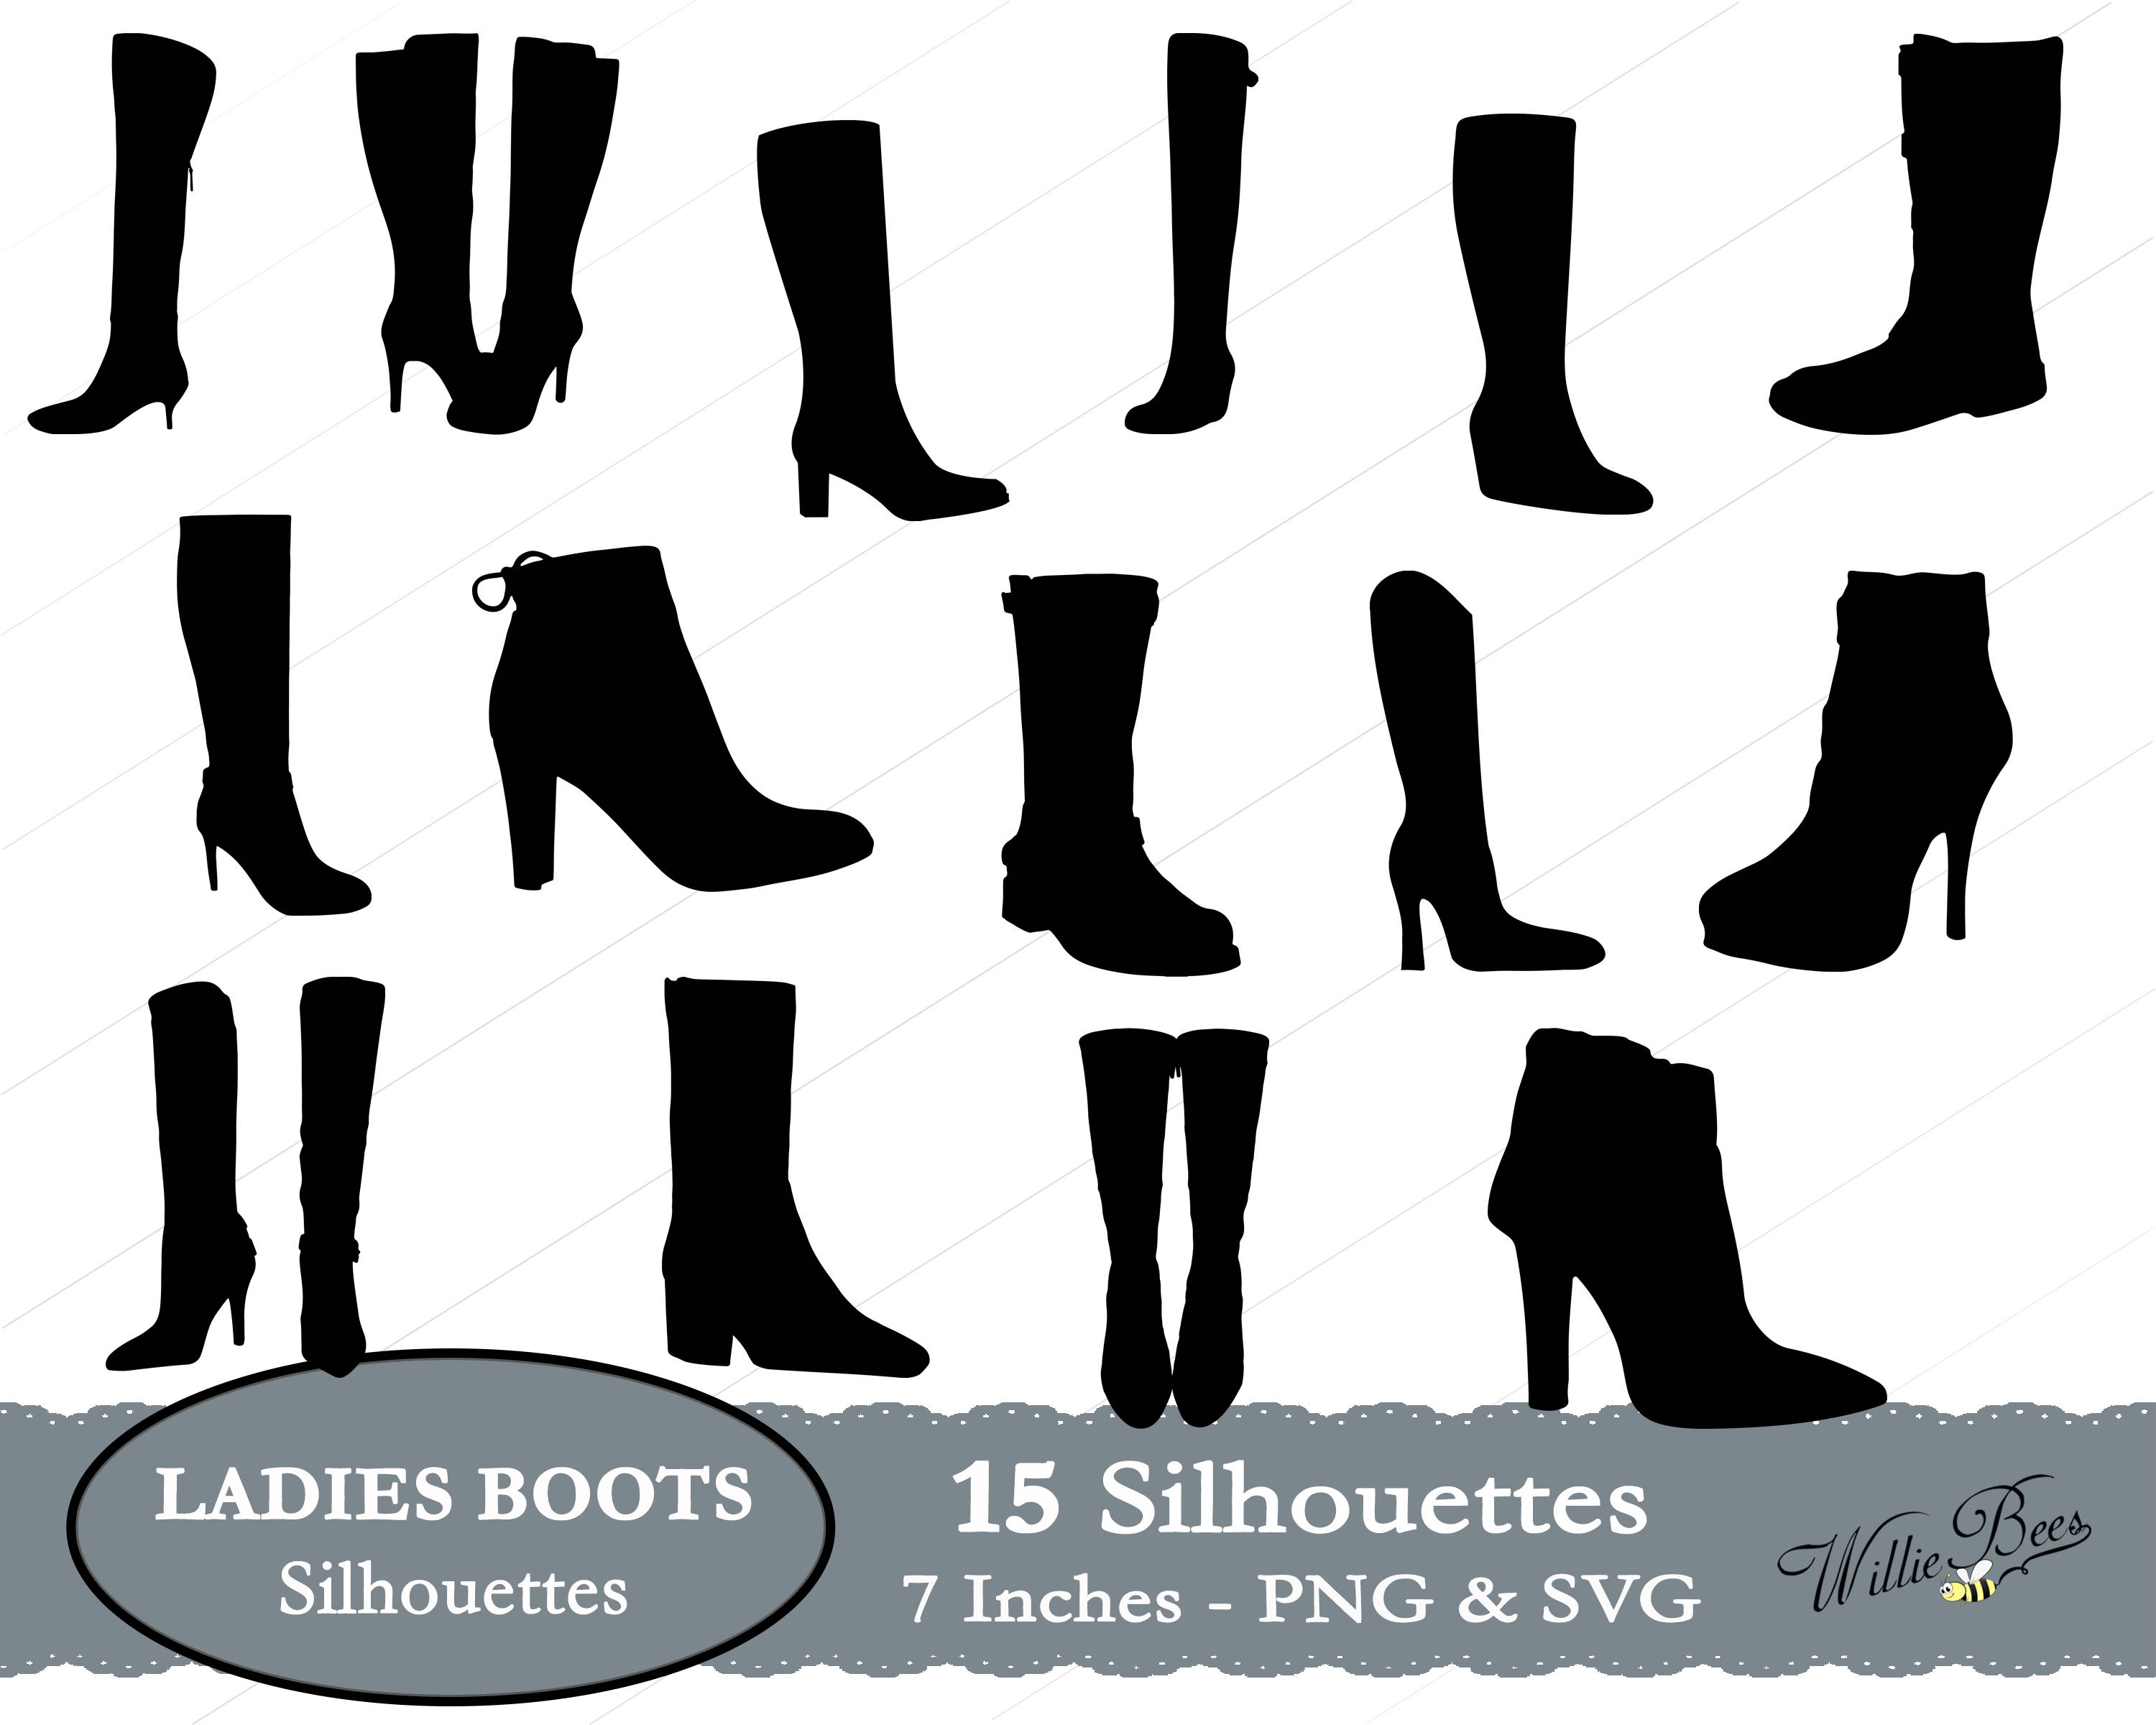 Boots svg ladies clip. Boot clipart high boot